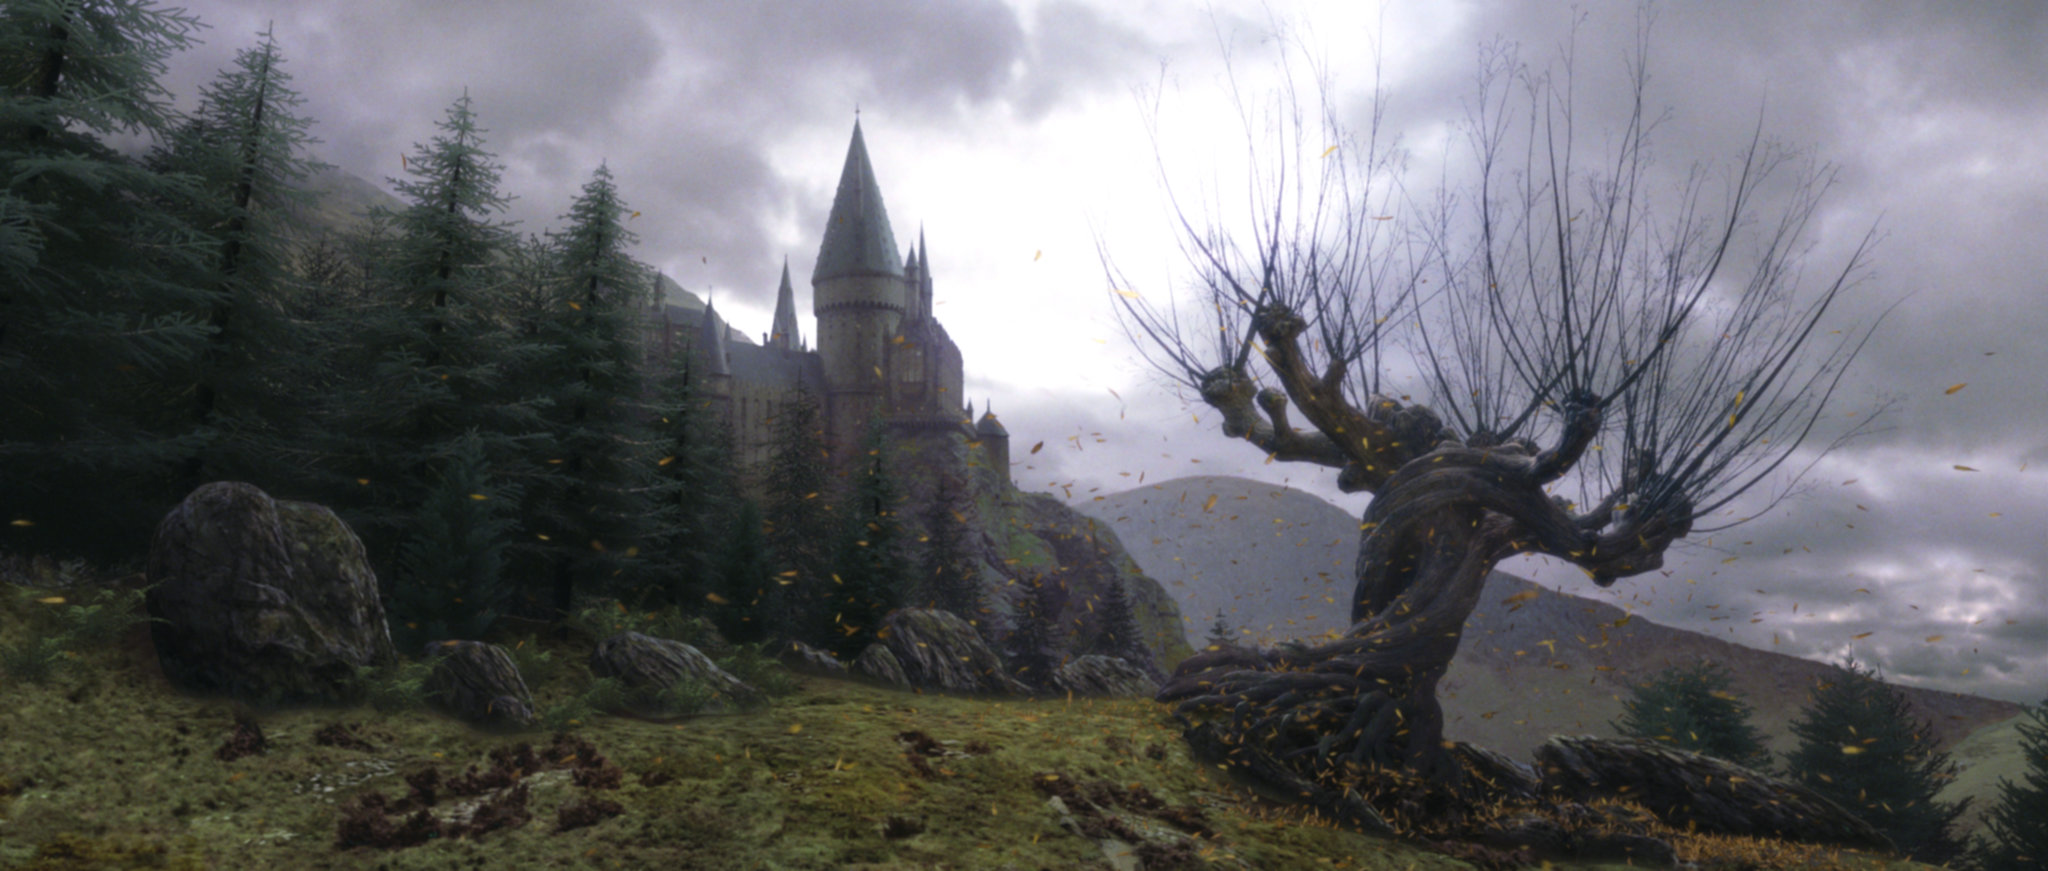 Hogwarts castle and the Whomping Wilow